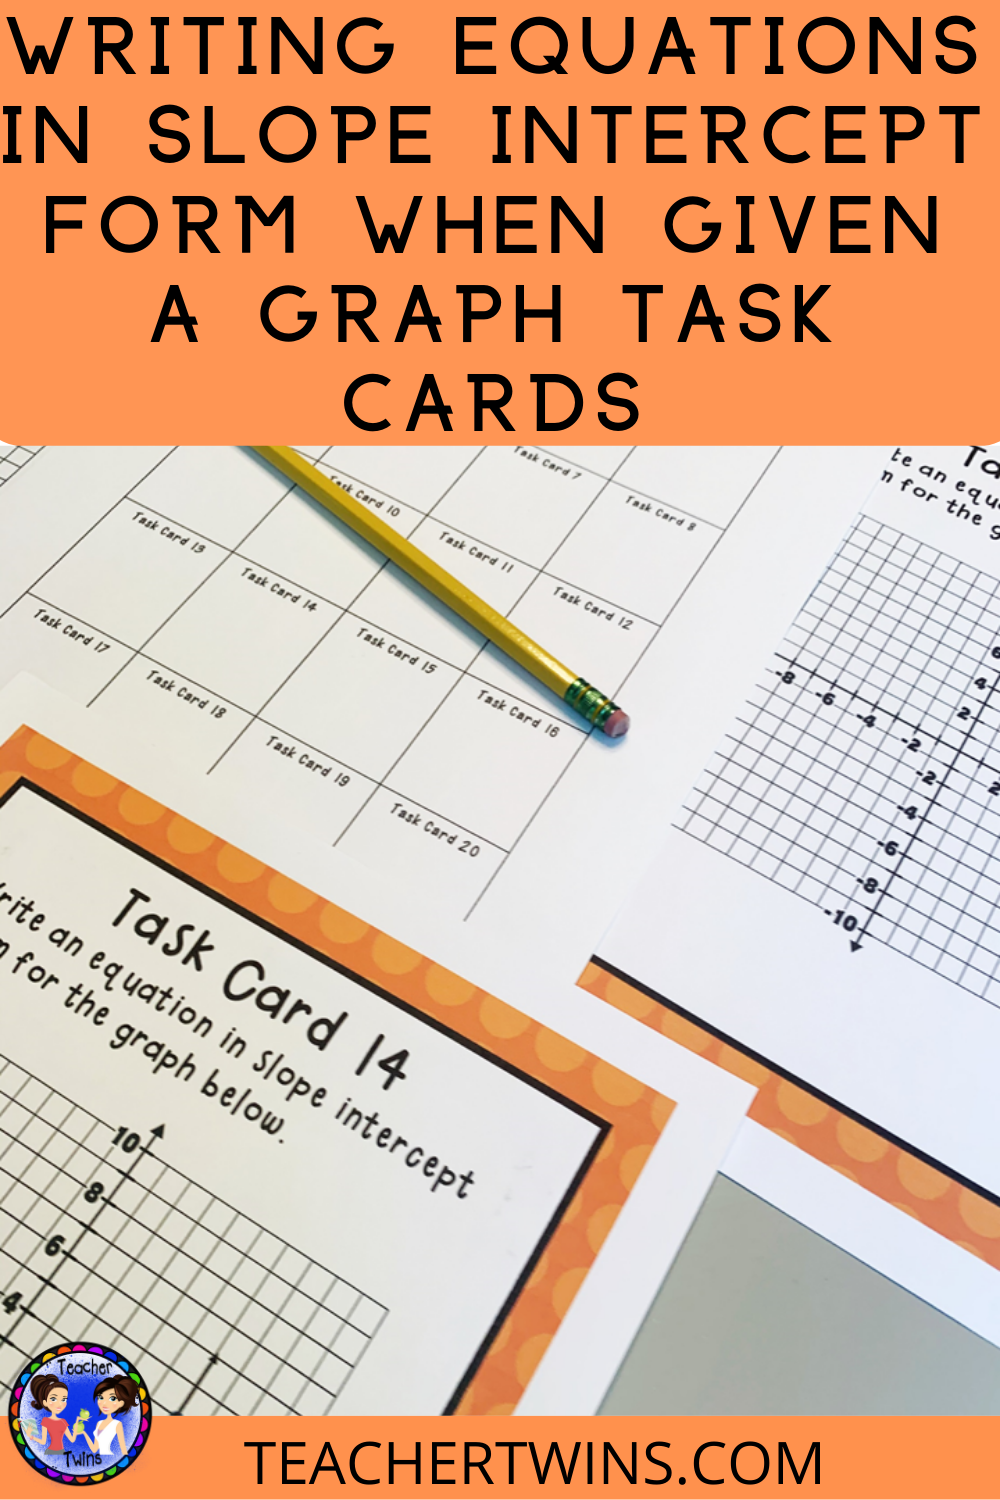 Writing Equations In Slope Intercept Form When Given A Graph Task Cards Writing Equations Pre Algebra Activities Task Cards [ 1500 x 1000 Pixel ]